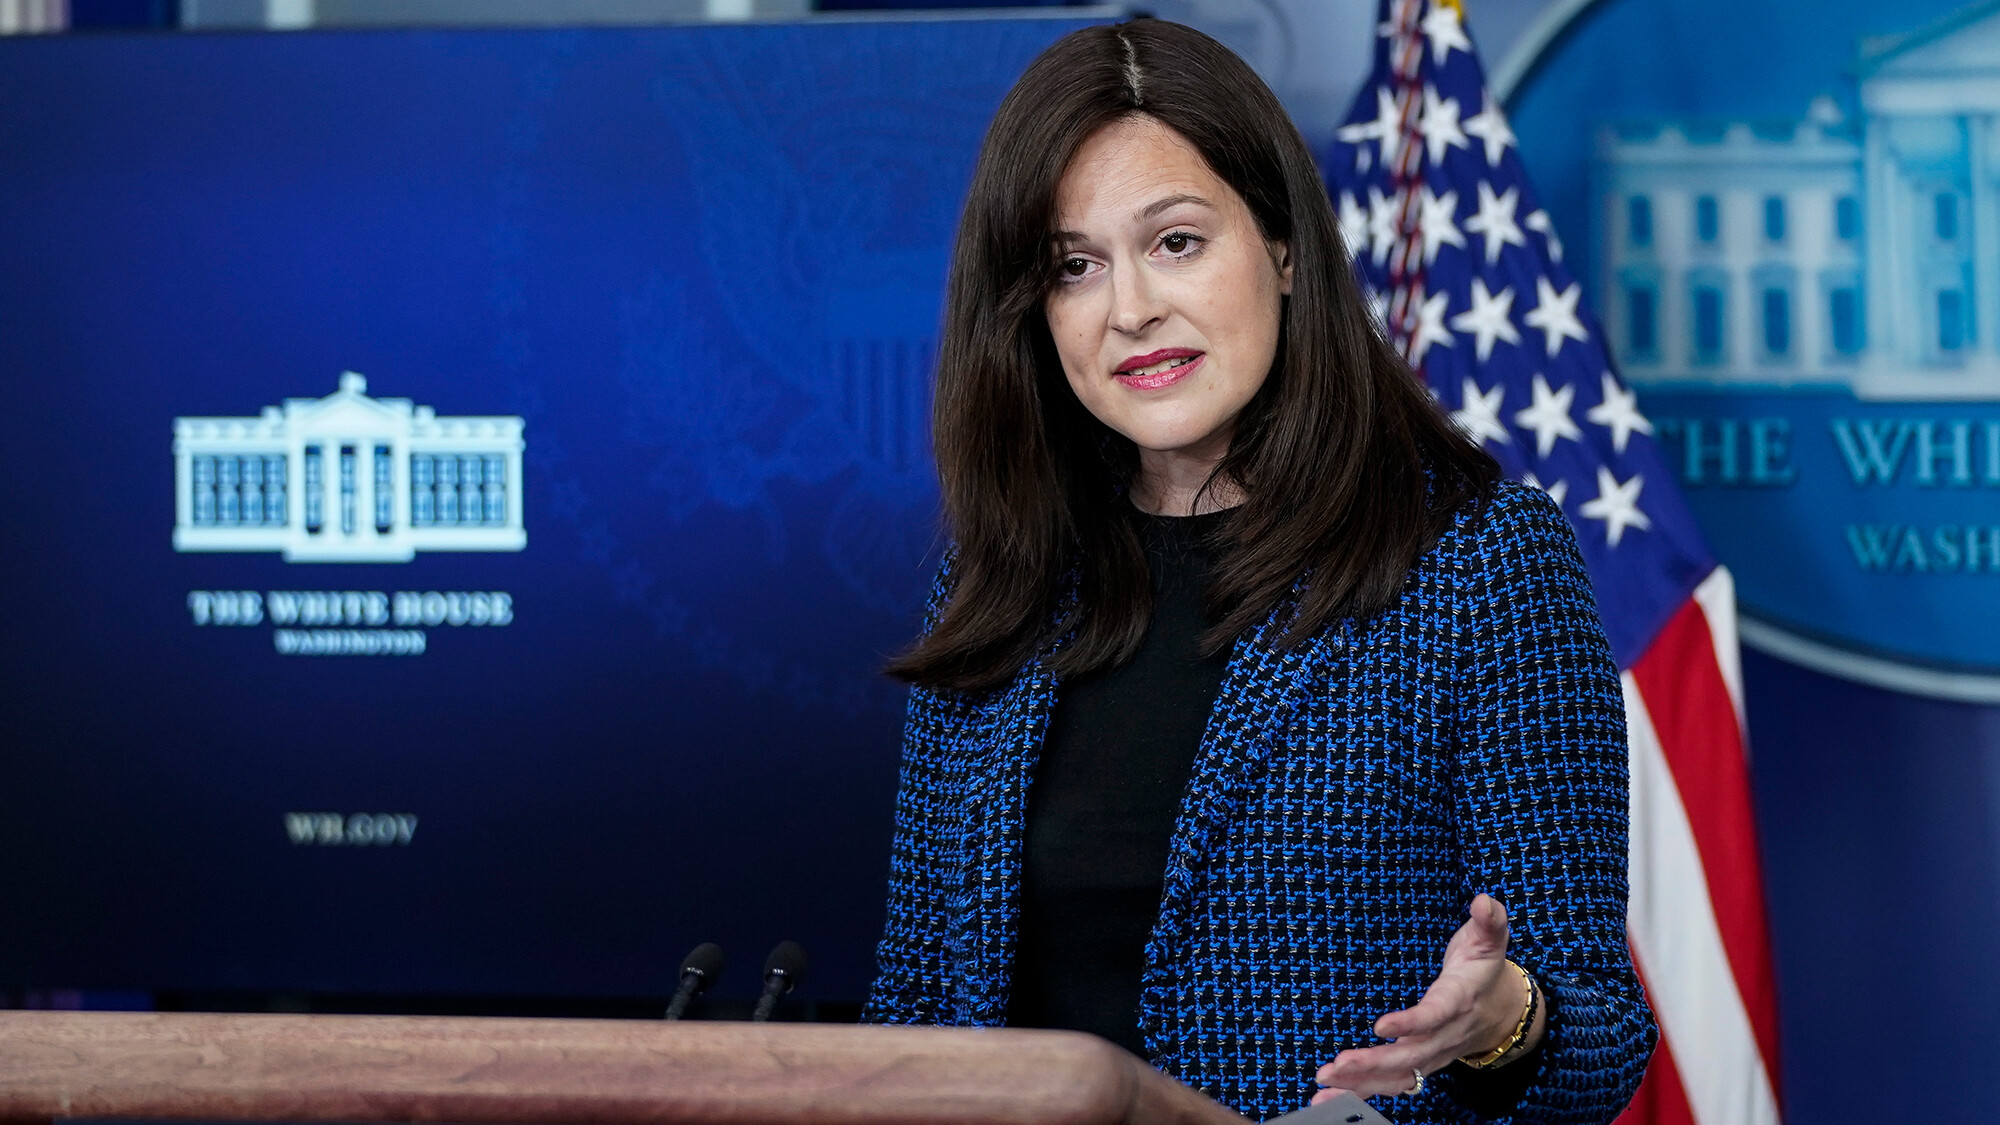 White House cyber official says 'commitment' by ransomware gang suggests Biden's warnings are being heard